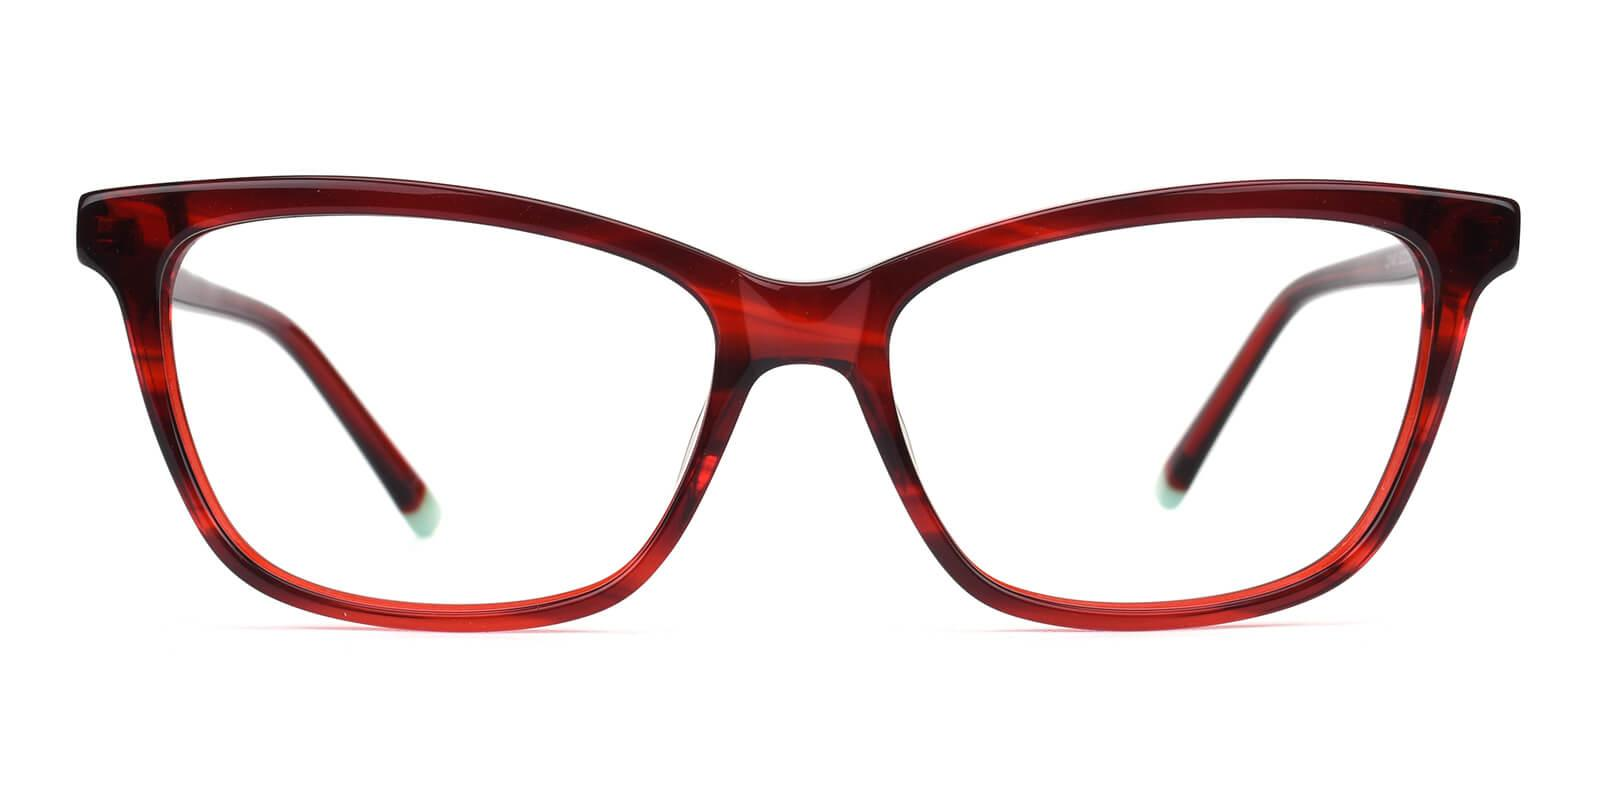 Ezra-Red-Cat-Acetate-Eyeglasses-additional2